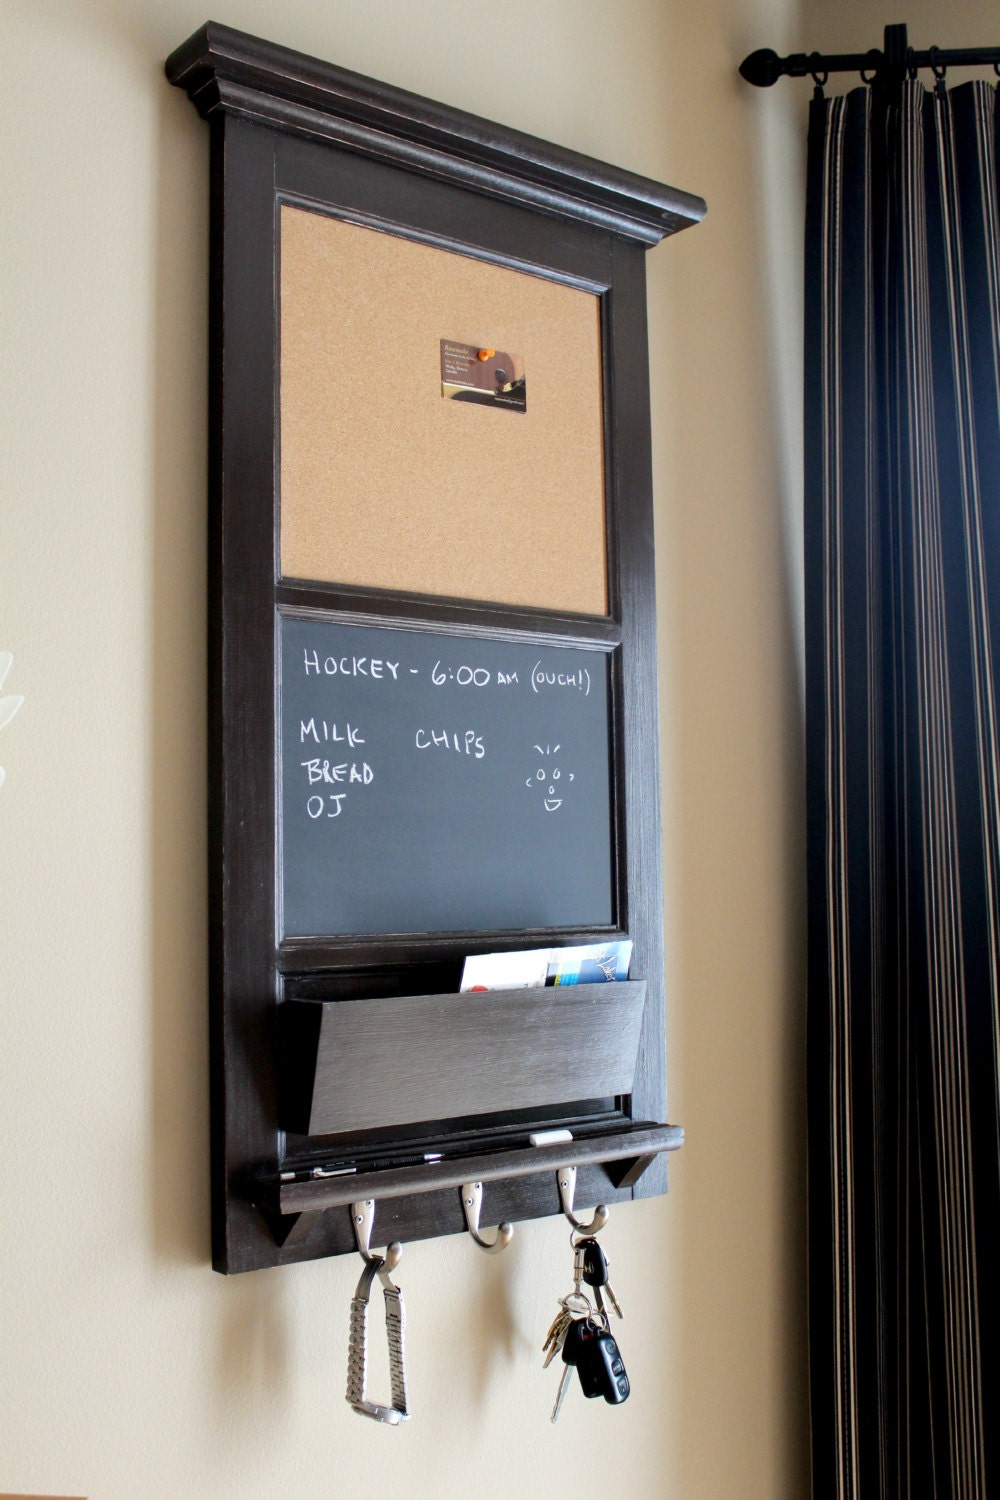 Vertical Wall Tall Chalkboard Cork Bulletin Board With Mail